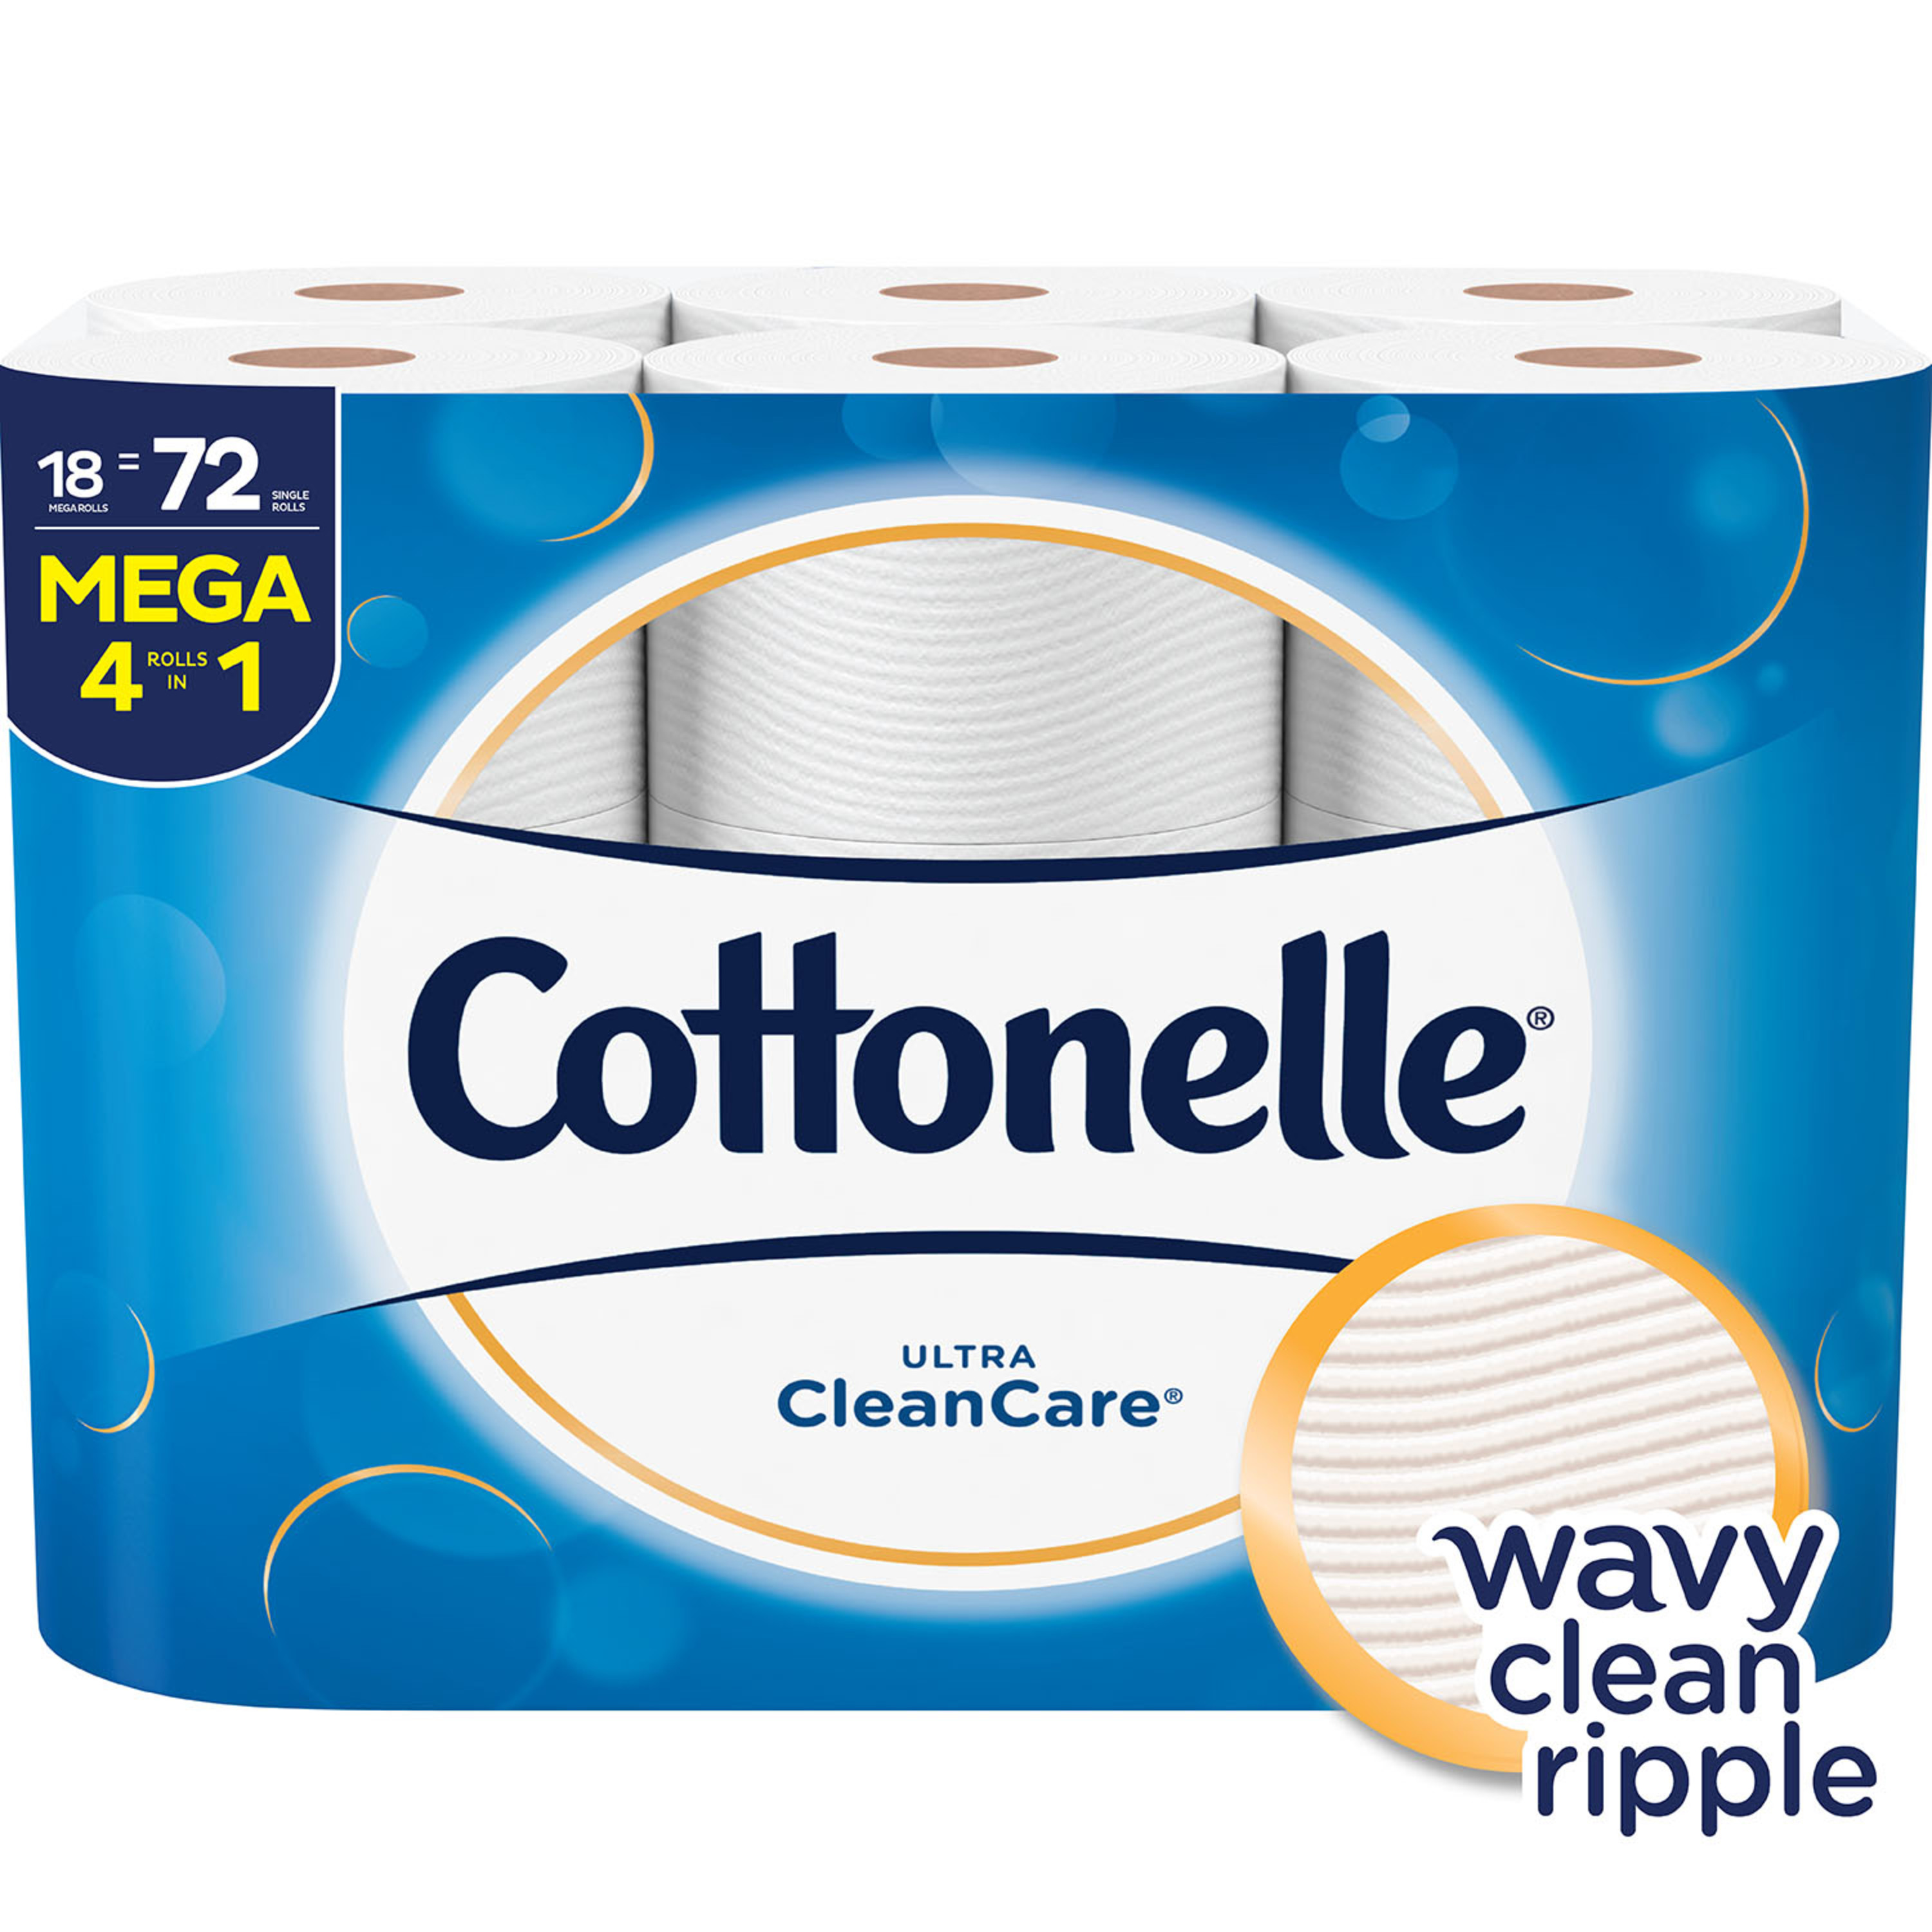 Cottonelle Ultra CleanCare 18 Mega Rolls, Toilet Paper, Strong